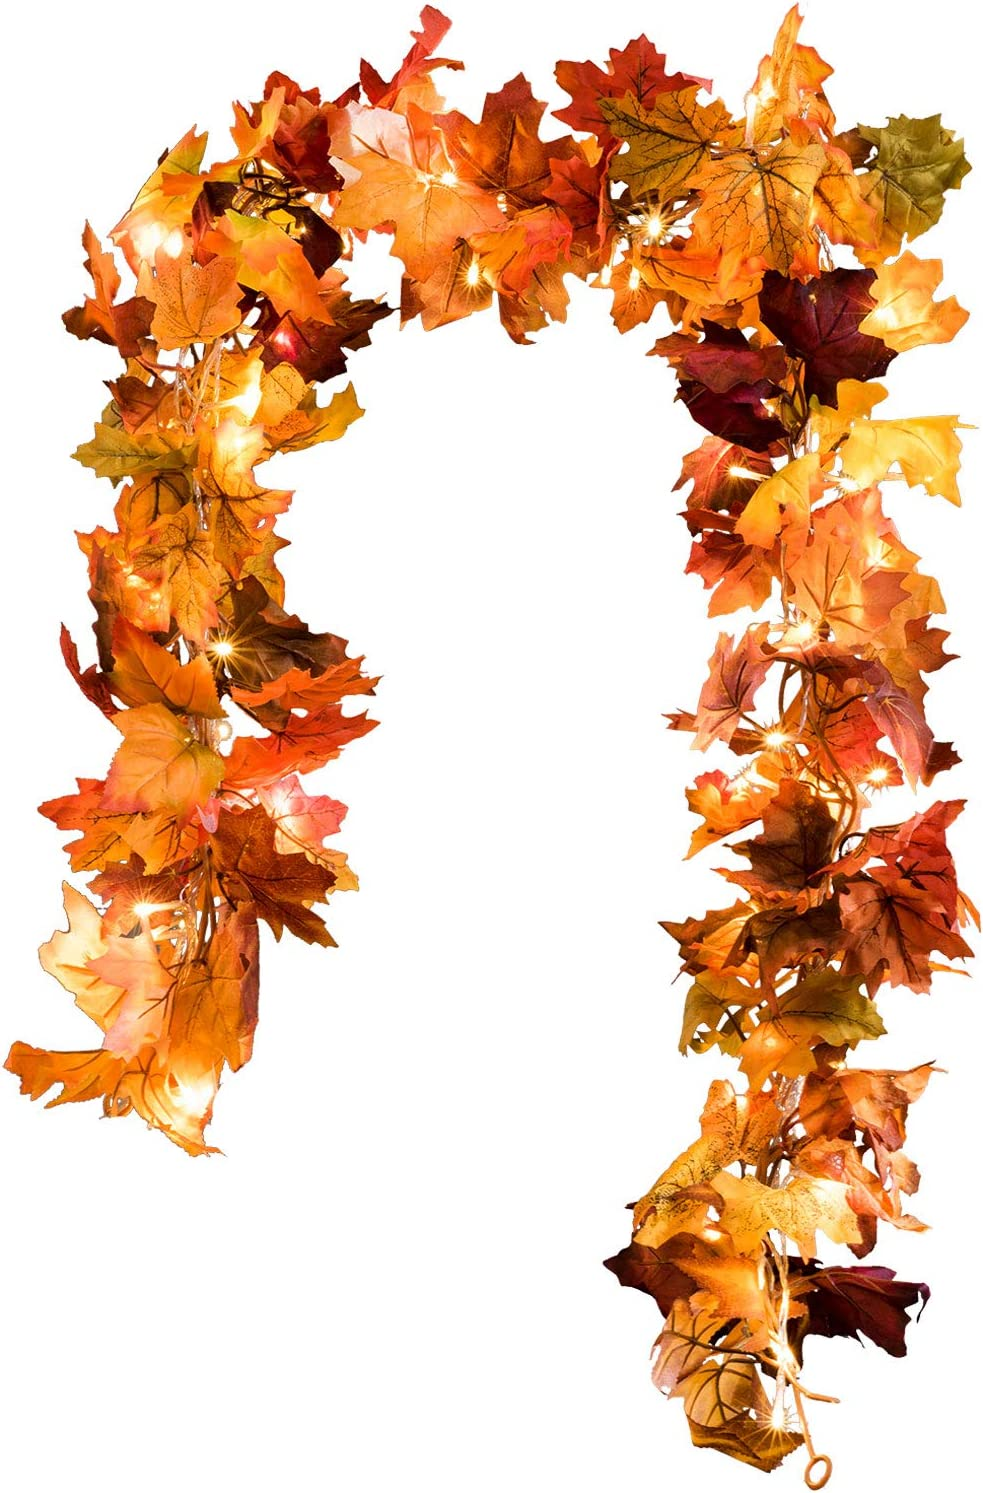 DearHouse 2 Pack Fall Garland Maple Leaf, 5.9Ft/Piece Hanging Vine Garland with 16.4ft 40 Led String Light, Artificial Autumn Garland Thanksgiving Decor for Home Wedding Fireplace Party